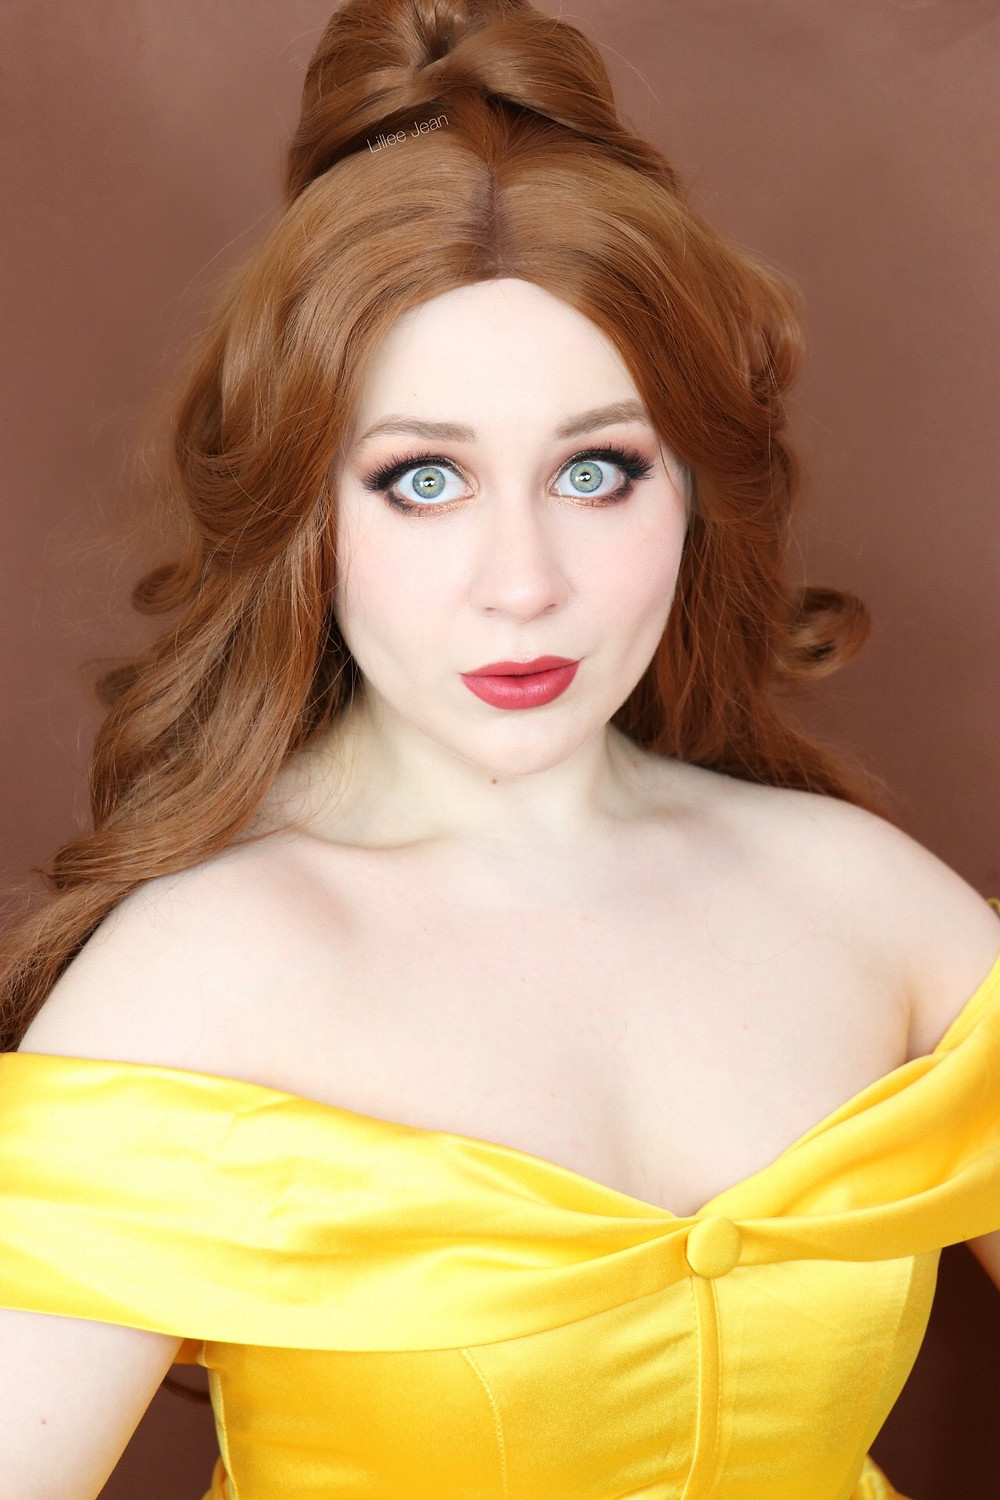 Disney Princess BELLE Beauty and the Beast SOFT GLAM Makeup Tutorial 2020 | Lillee Jean